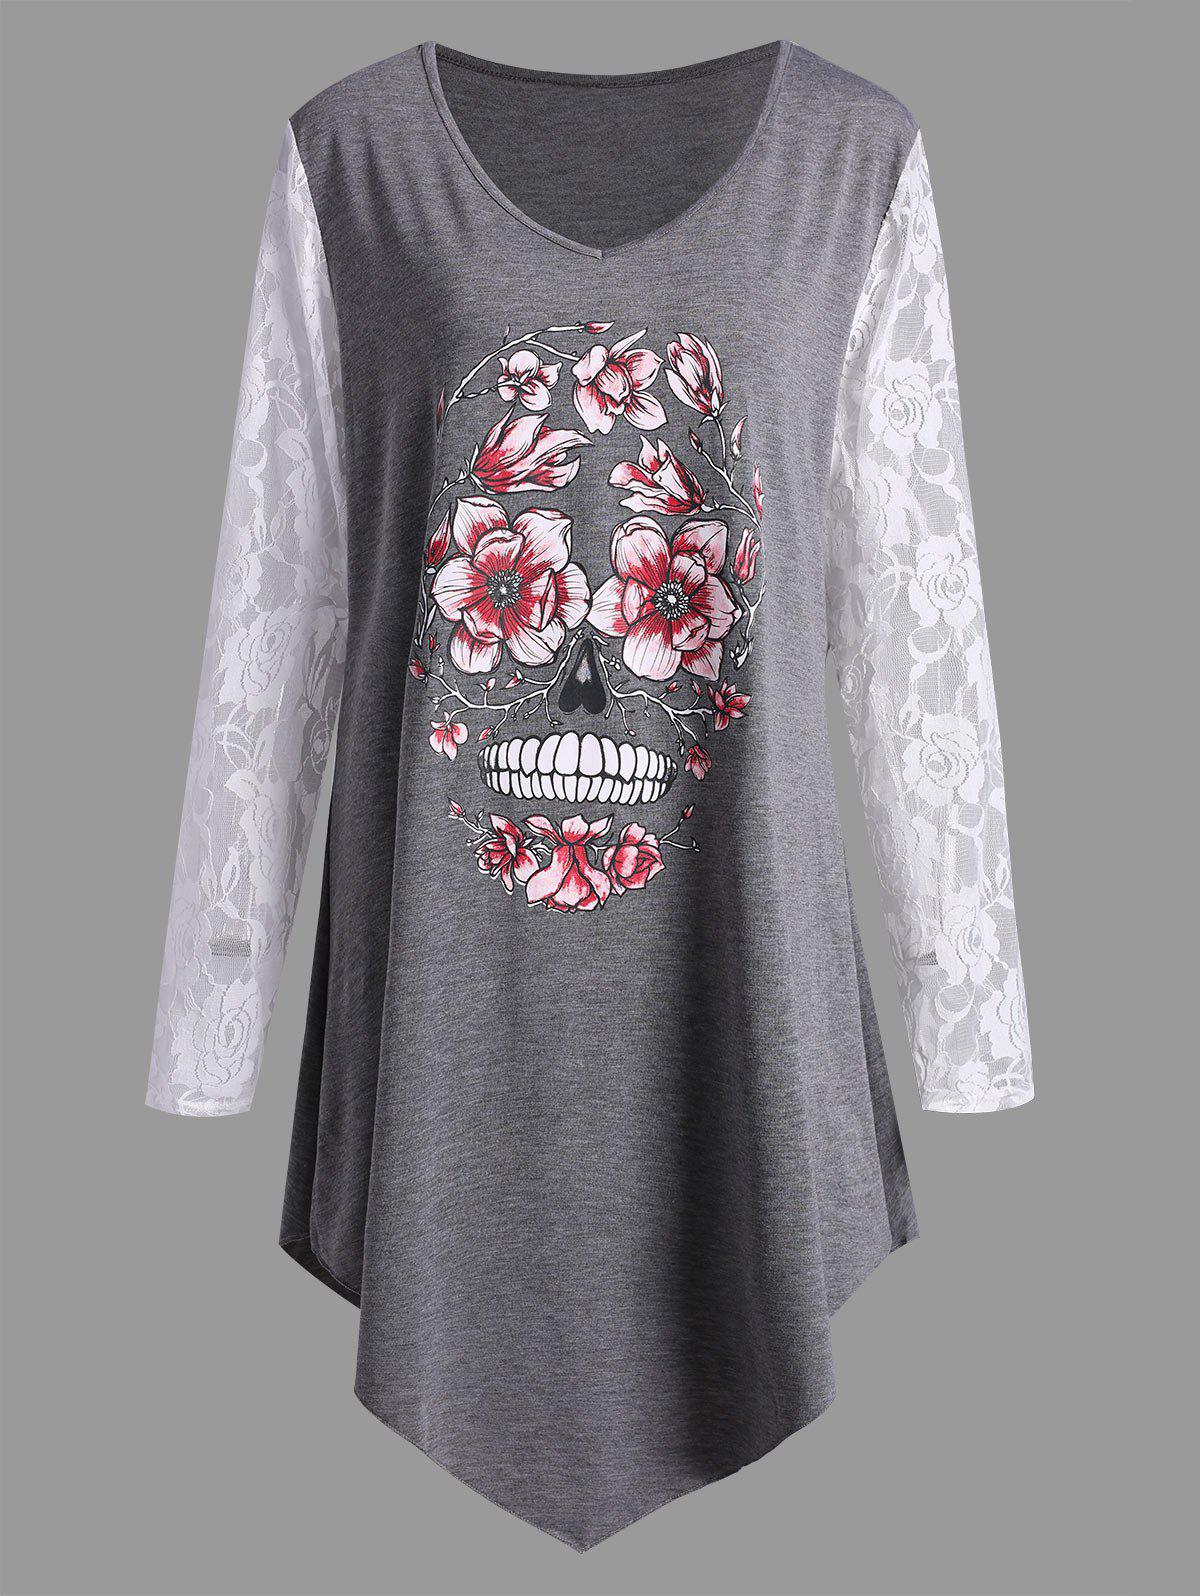 Chic Plus Size Halloween Floral Skull Lace Panel T-shirt